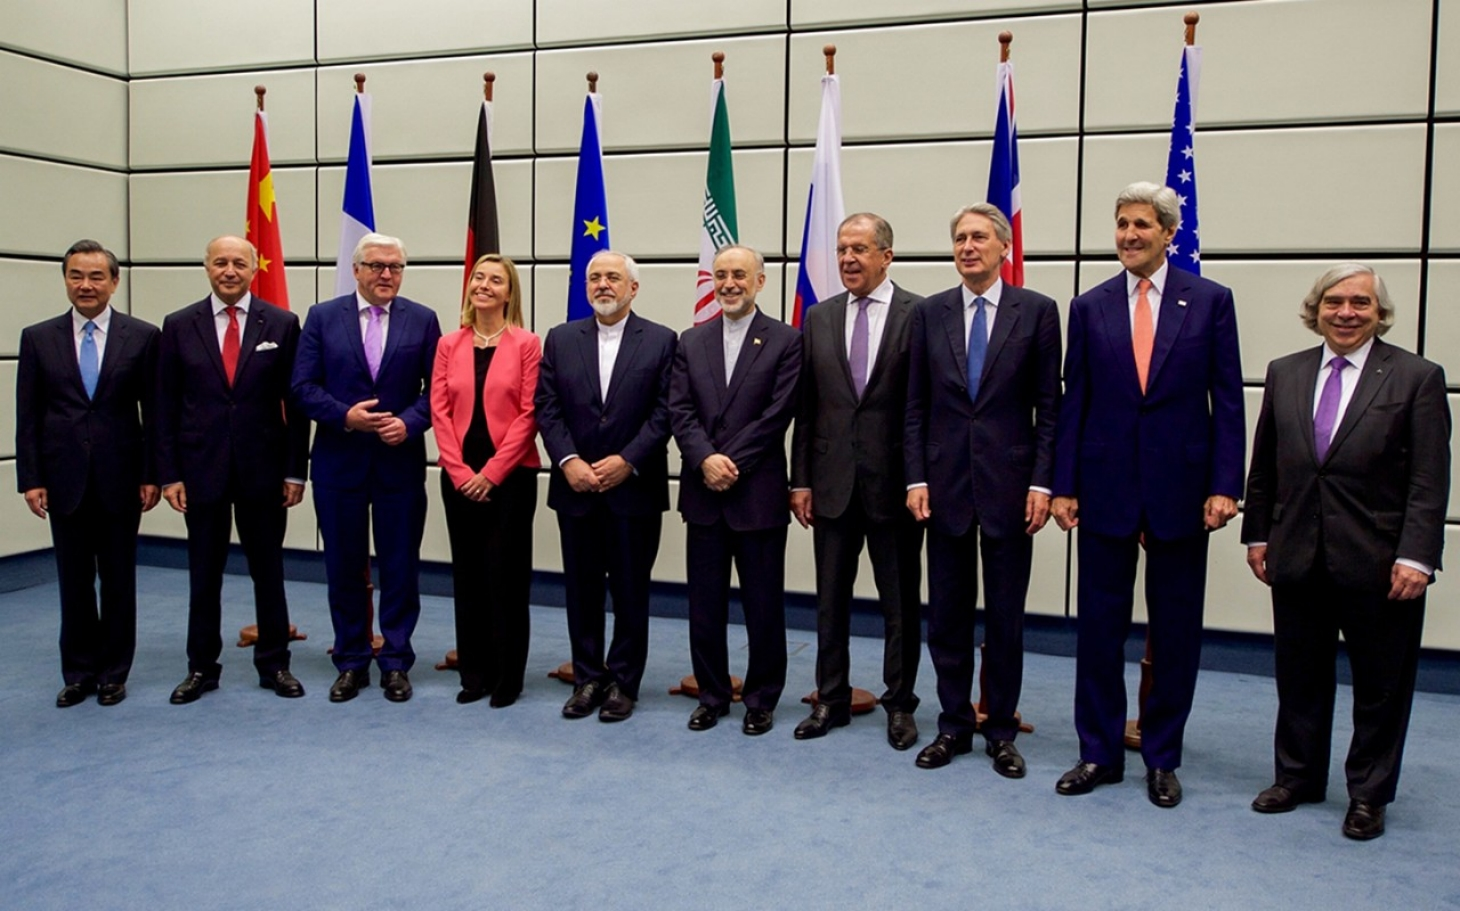 Iran Agreement Marks A New Era For The Middle East Al Jazeera America